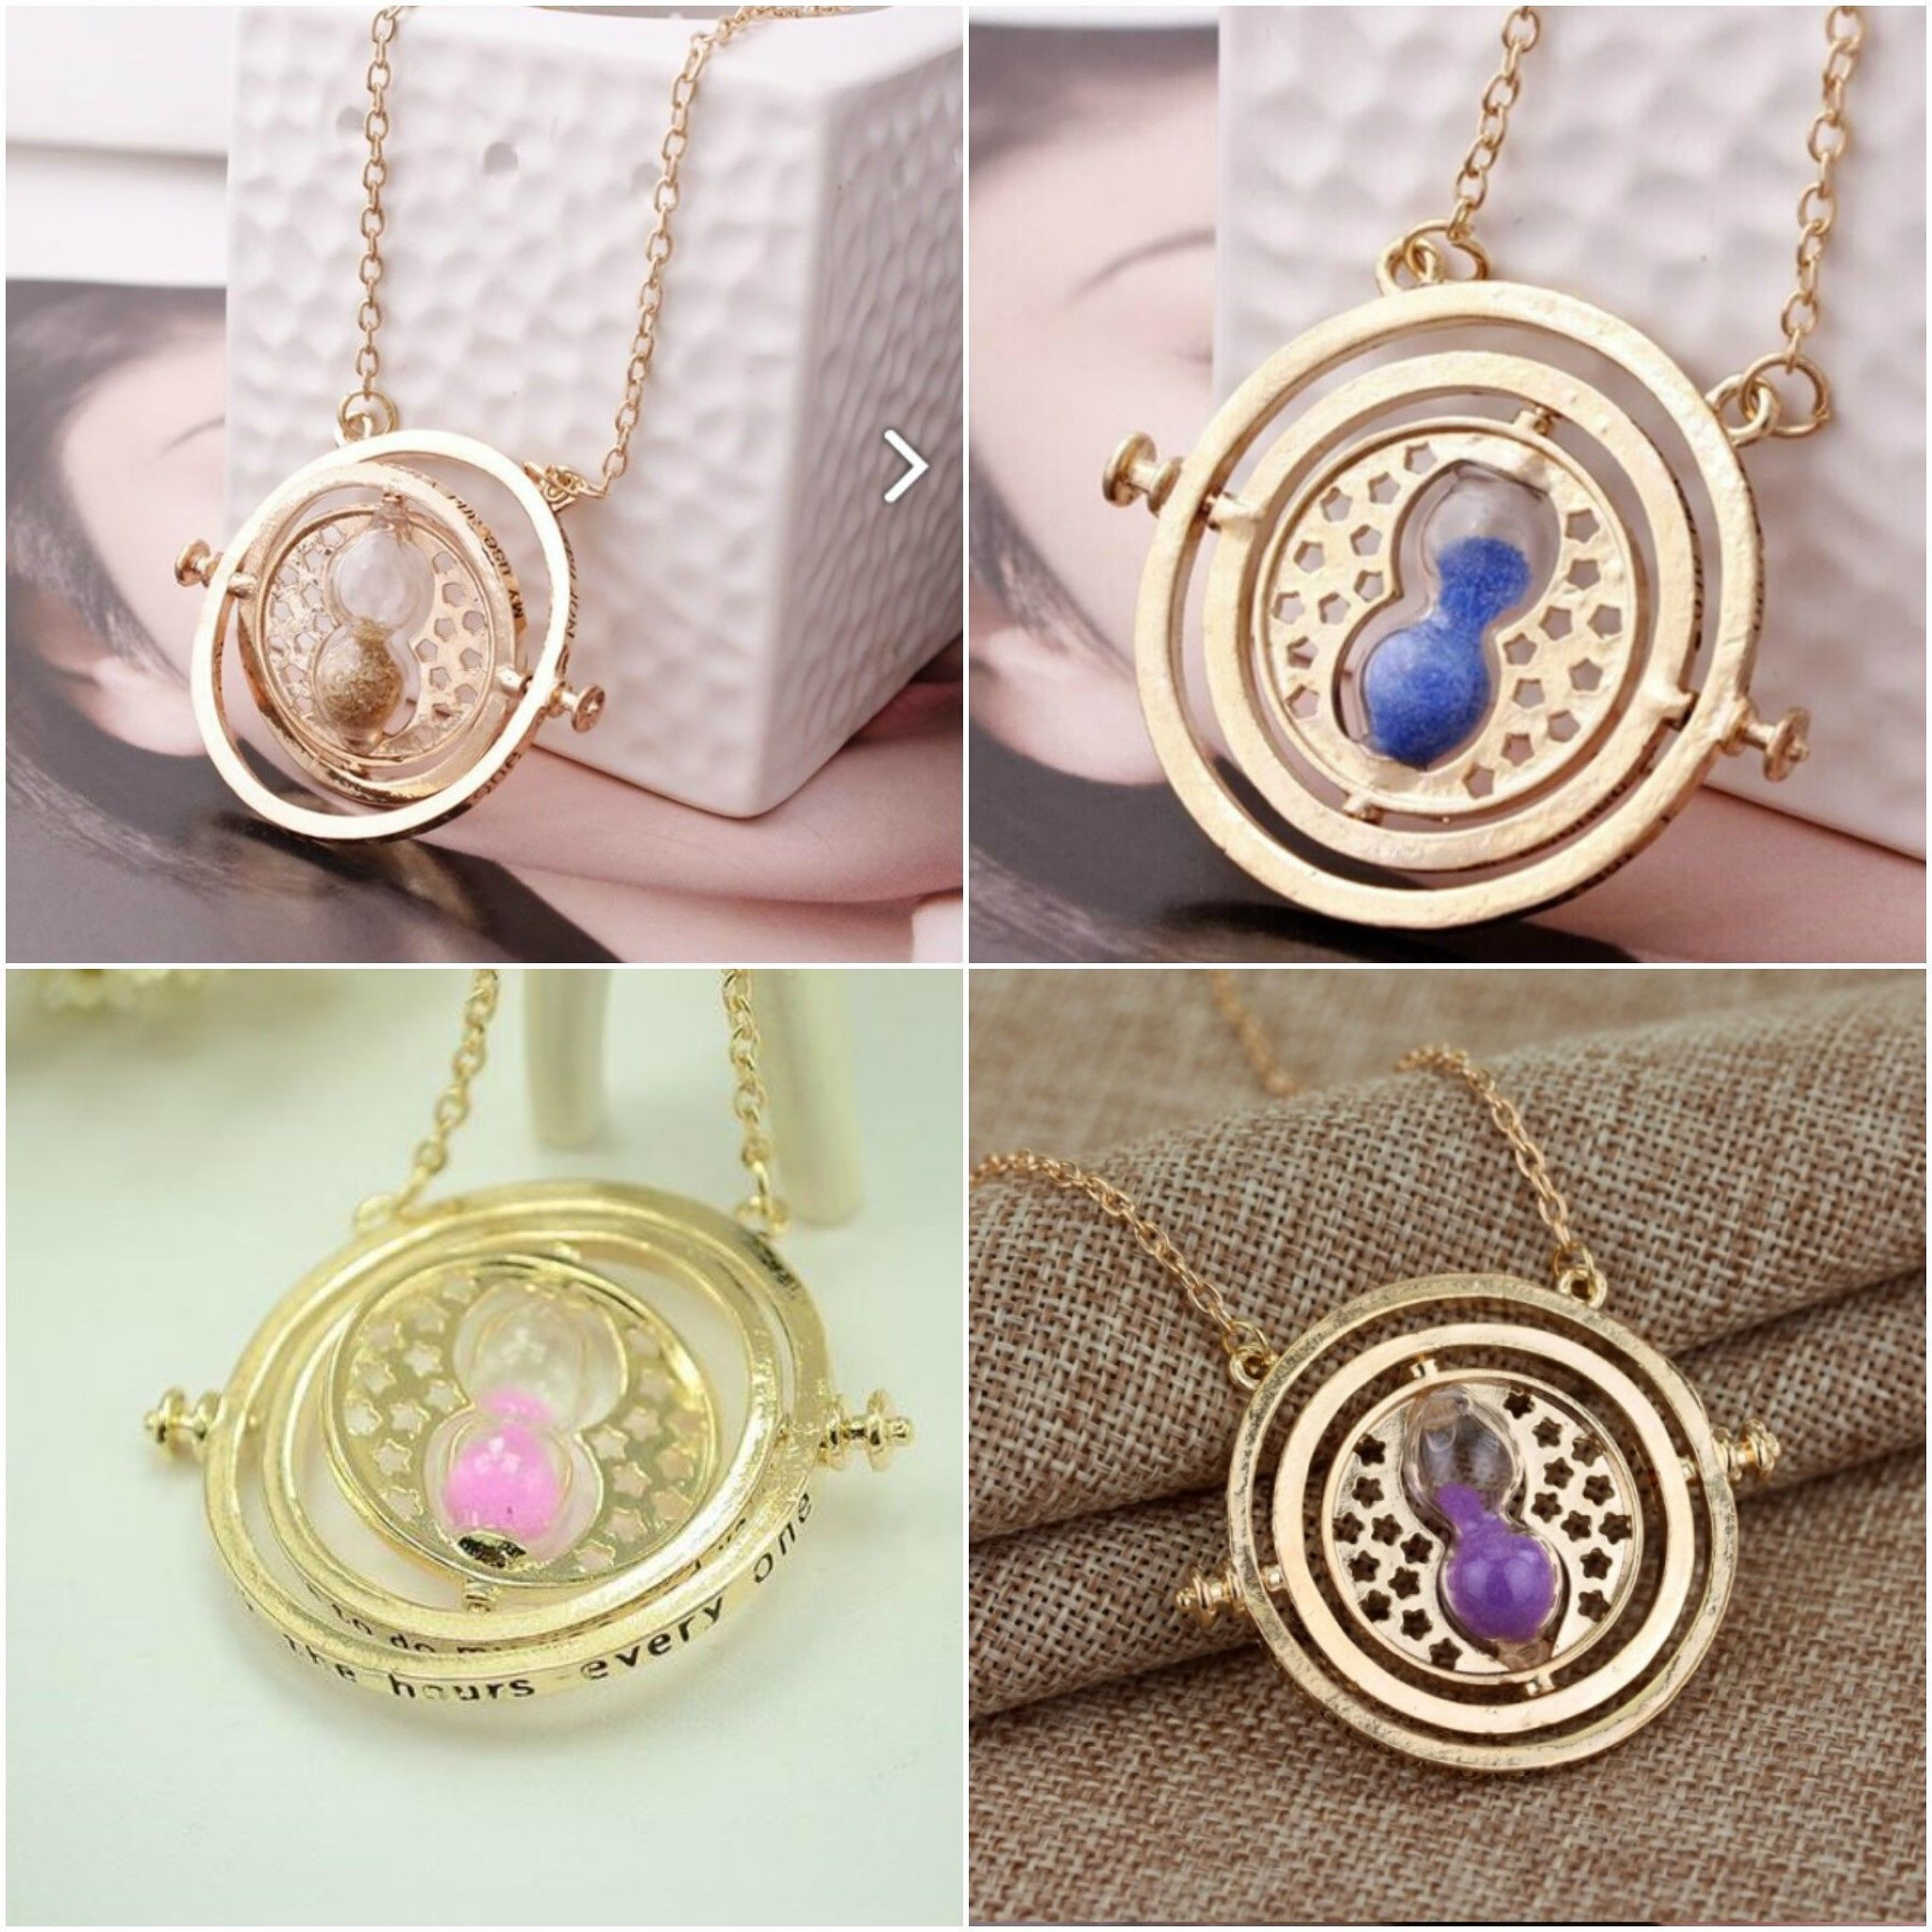 Harry Potter Inspired Time Turner Necklace With Hourglass And Sand